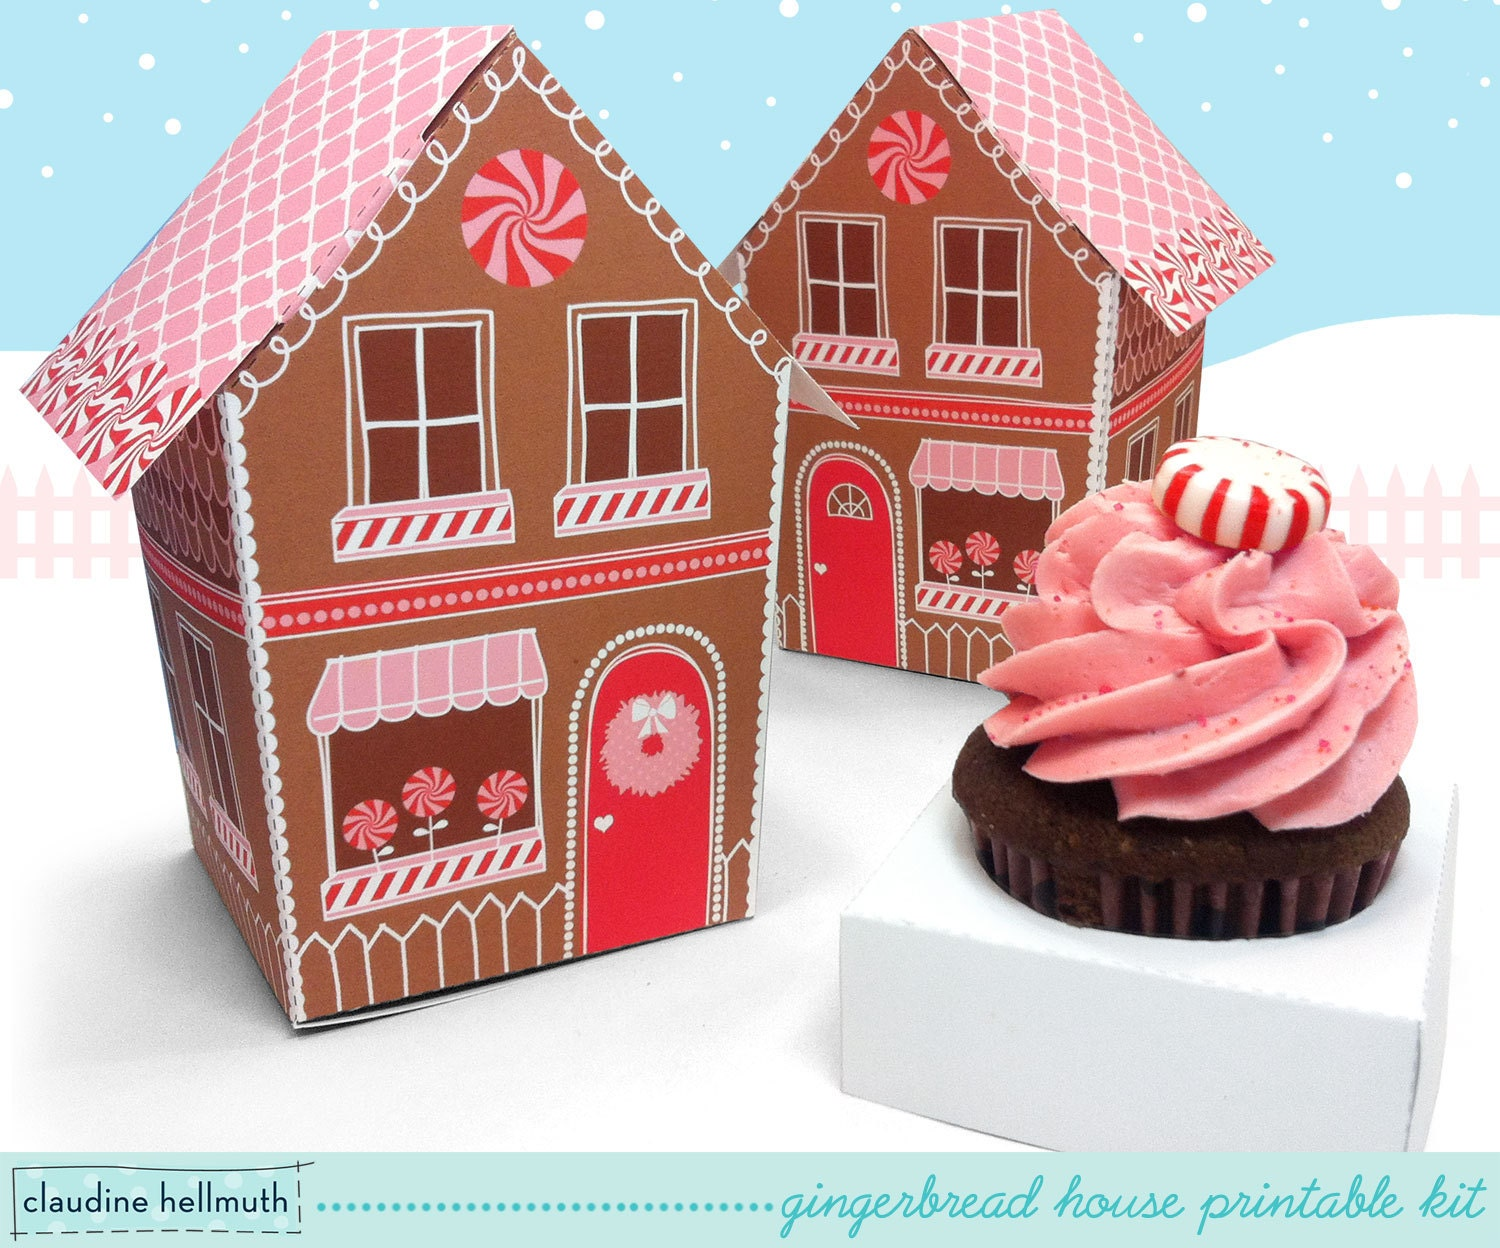 gingerbread house cupcake holder Christmas by claudinehellmuth